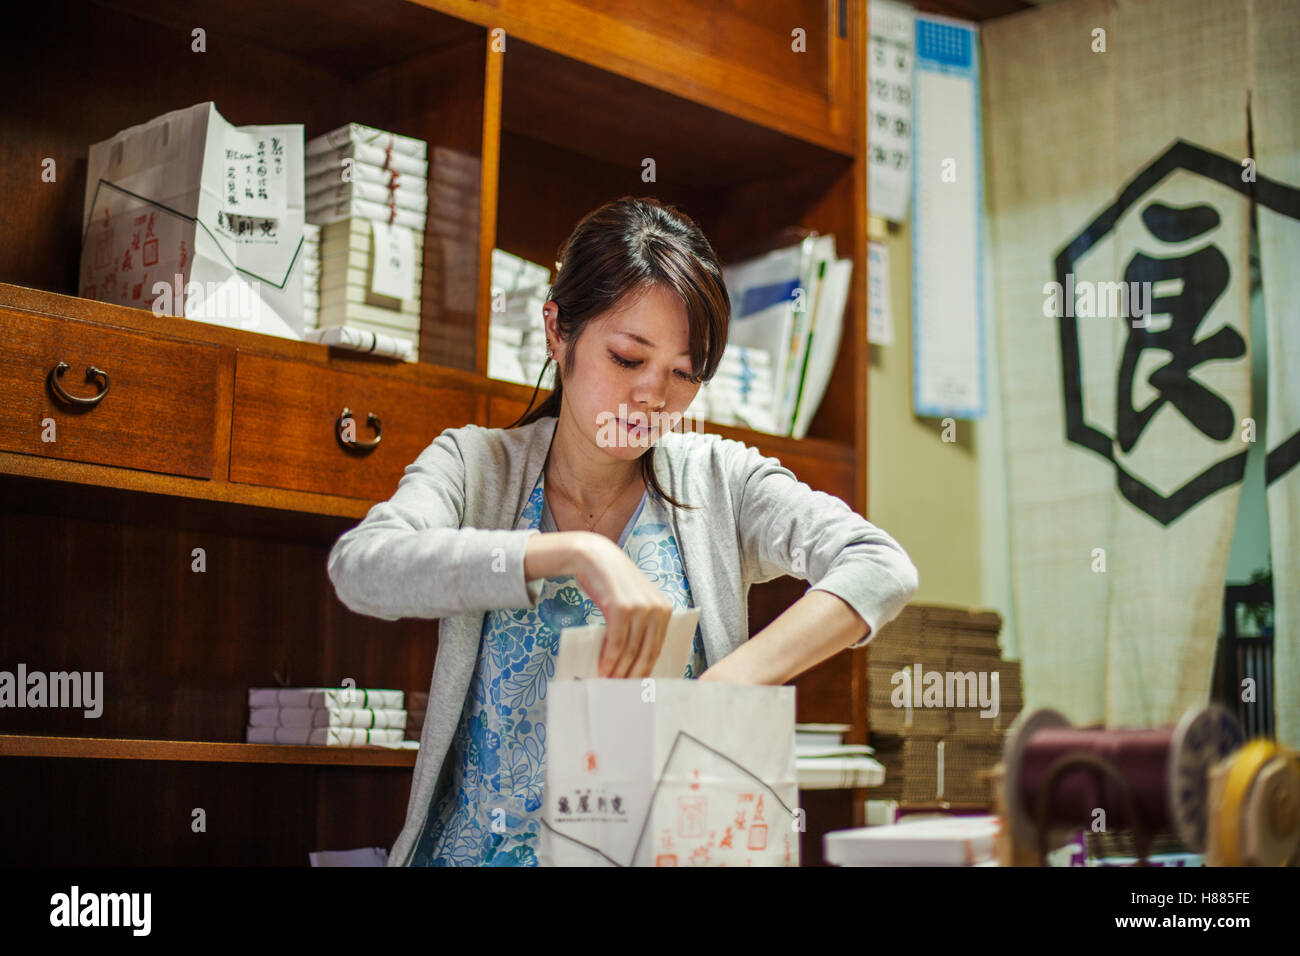 A small artisan producer of specialist treats, sweets called wagashi. A woman working packing sweet boxes for delivery. - Stock Image